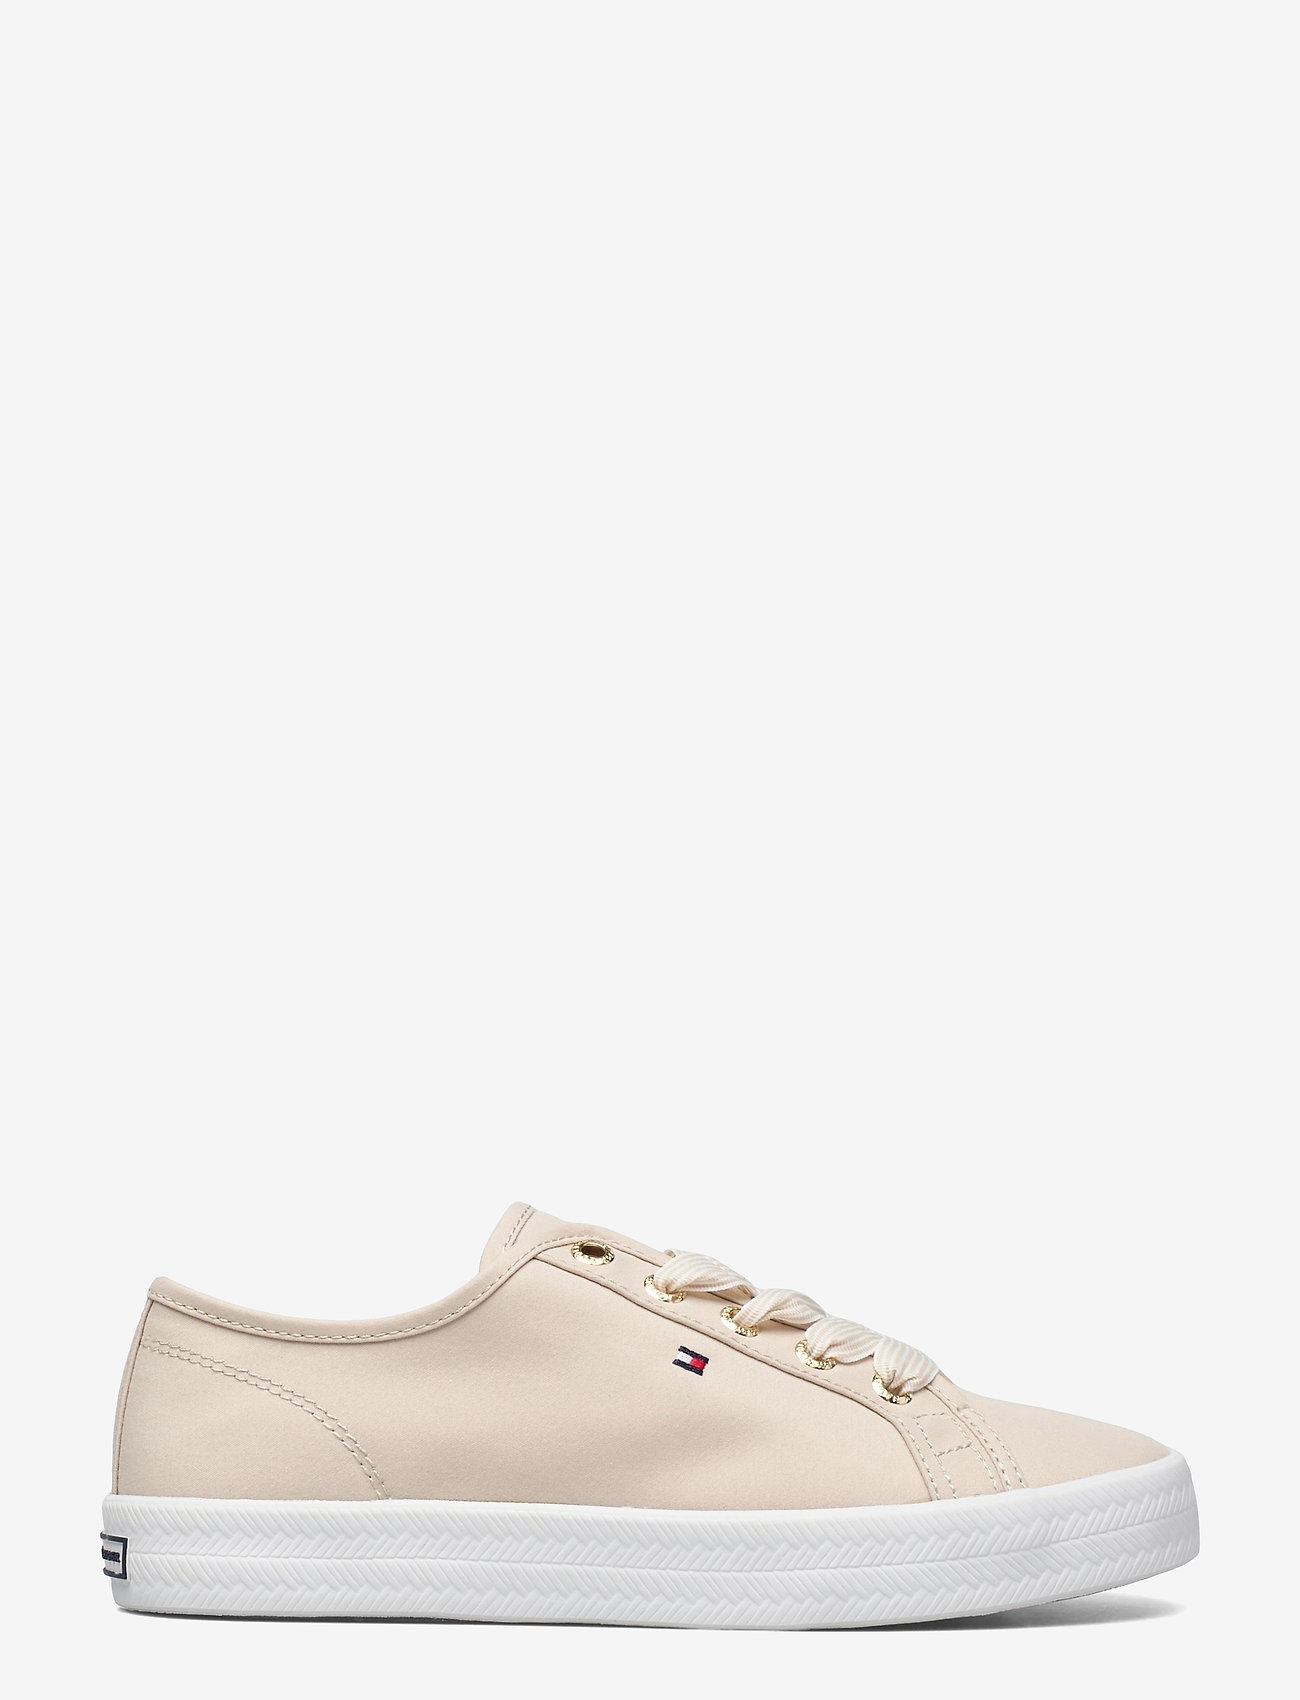 Tommy Hilfiger - ESSENTIAL NAUTICAL SNEAKER - low top sneakers - classic beige - 1